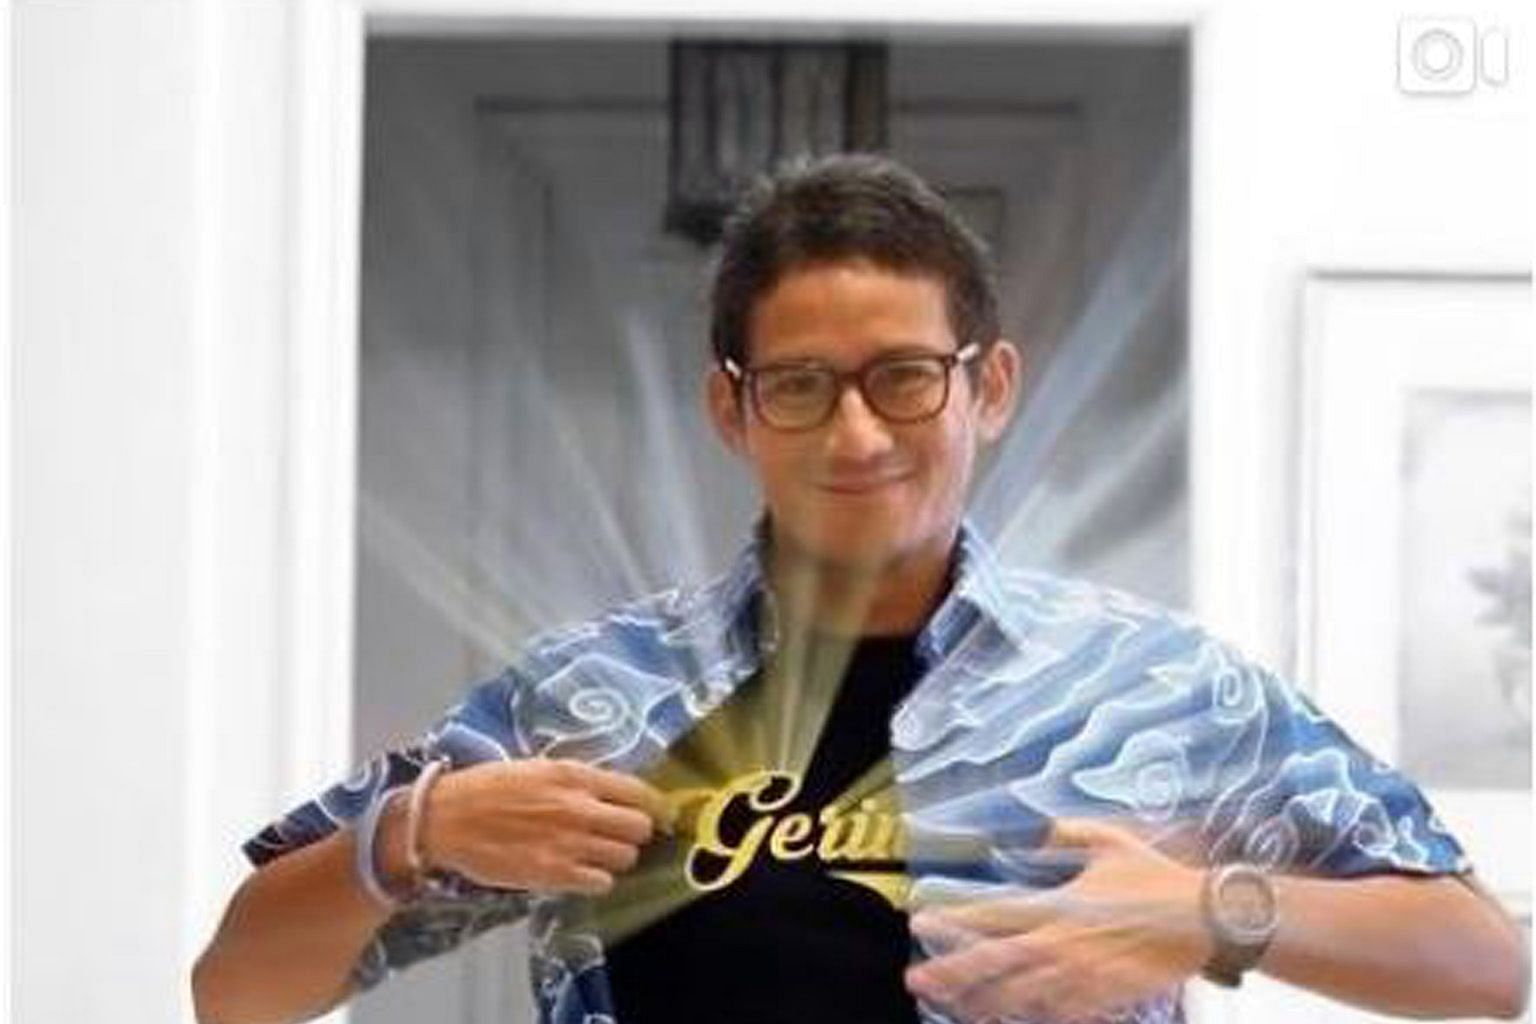 Mr Sandiaga Uno announced his return to Gerindra on Tuesday with a tongue-in-cheek video mimicking Clark Kent's iconic change into a Superman costume.